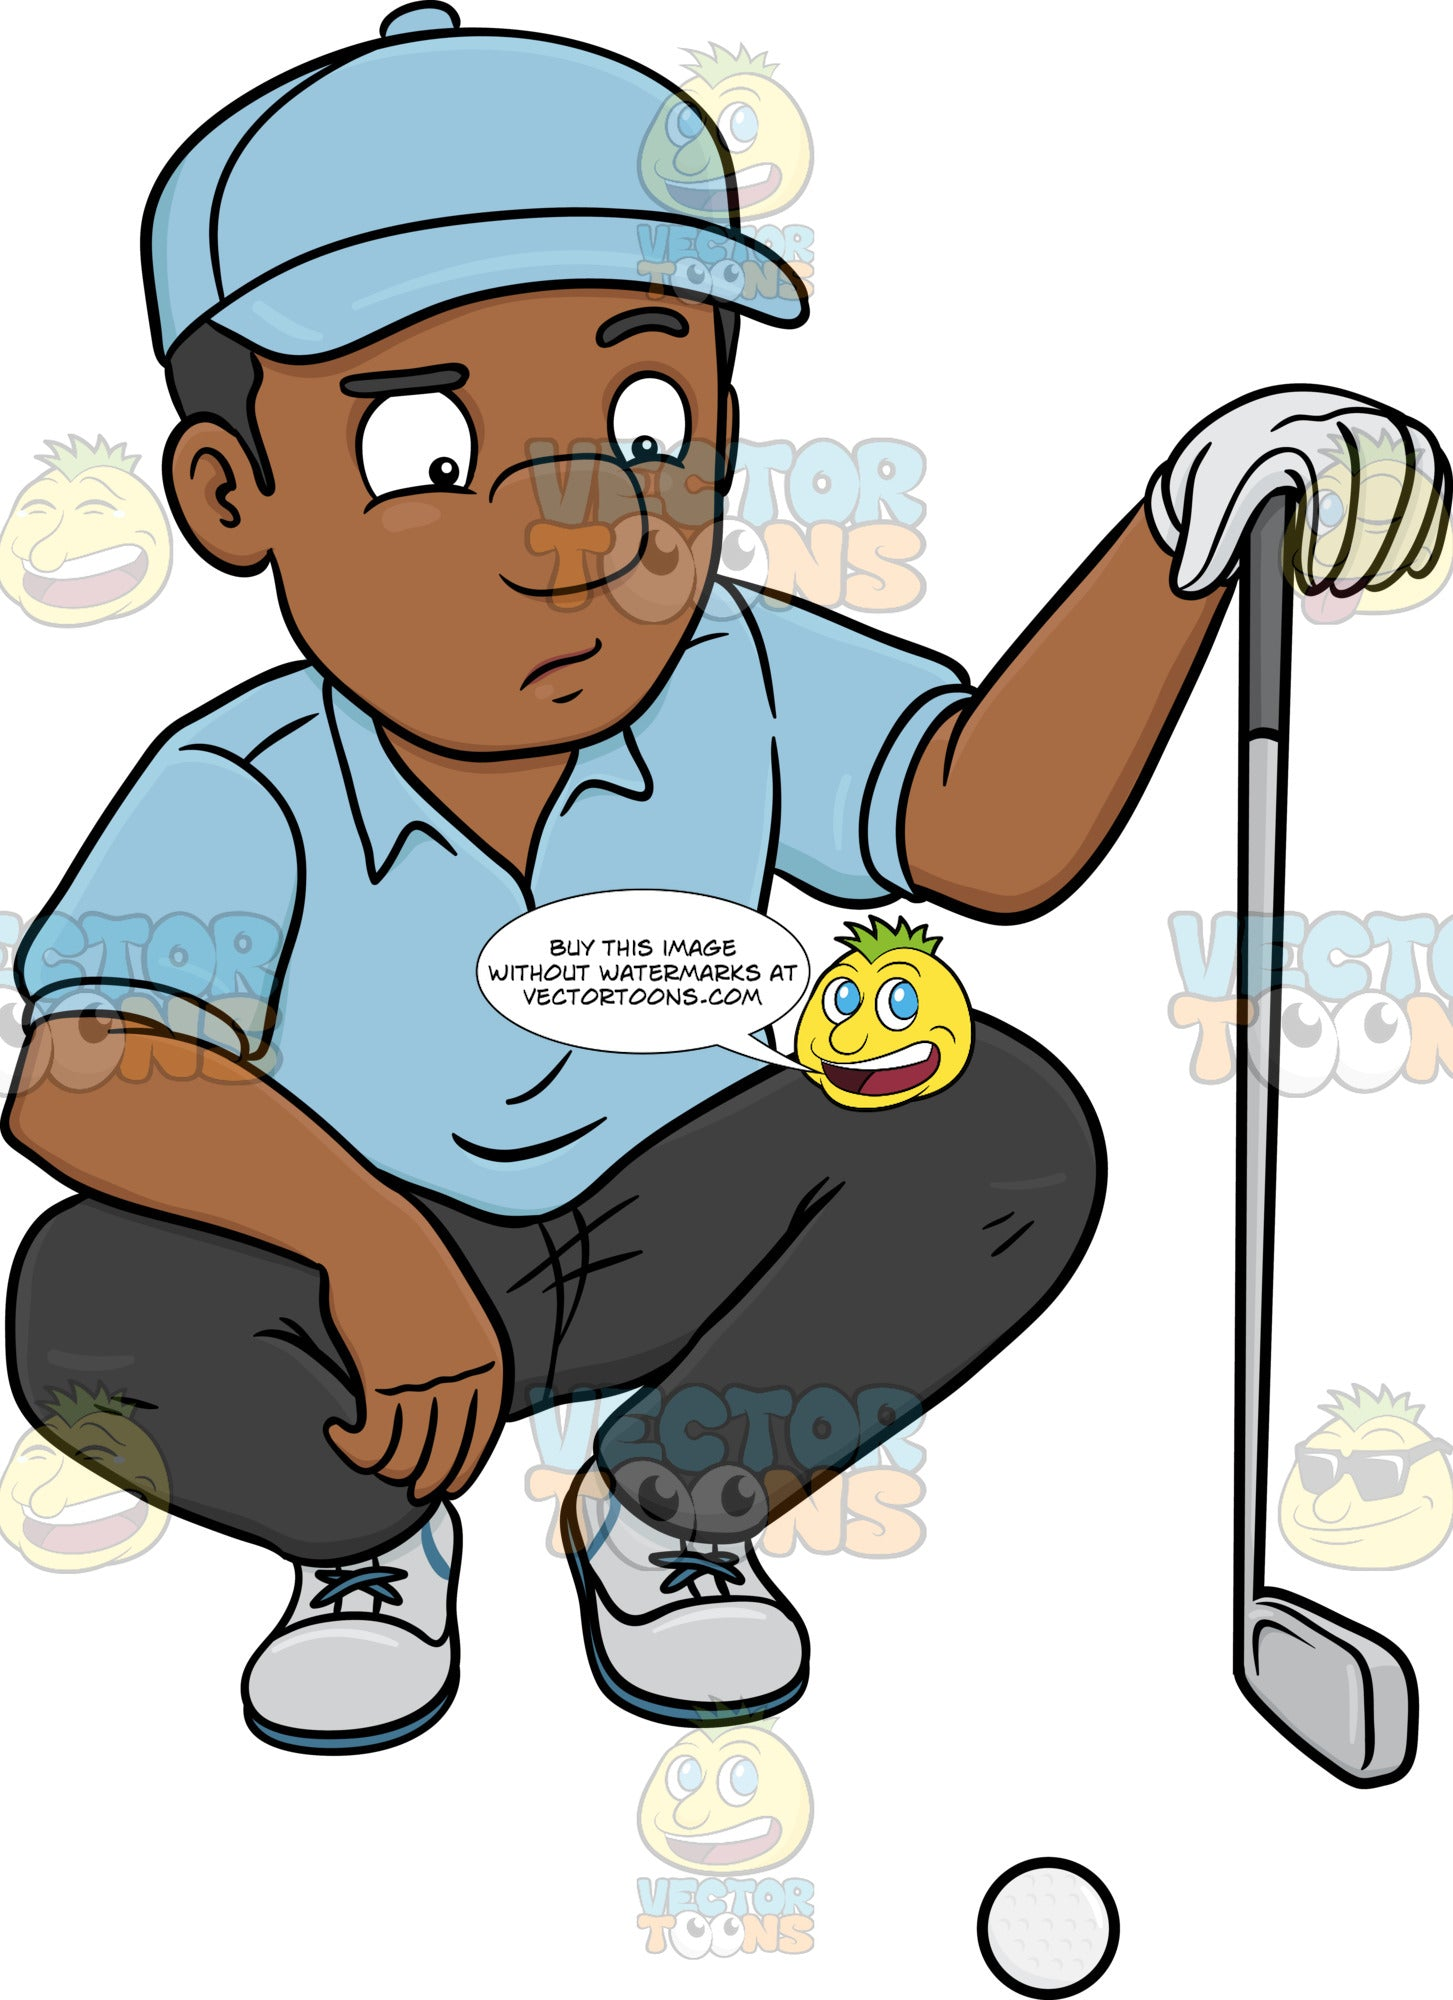 A Black Golfer Estimates And Studies A Golf Ball Just Before Making A Putt